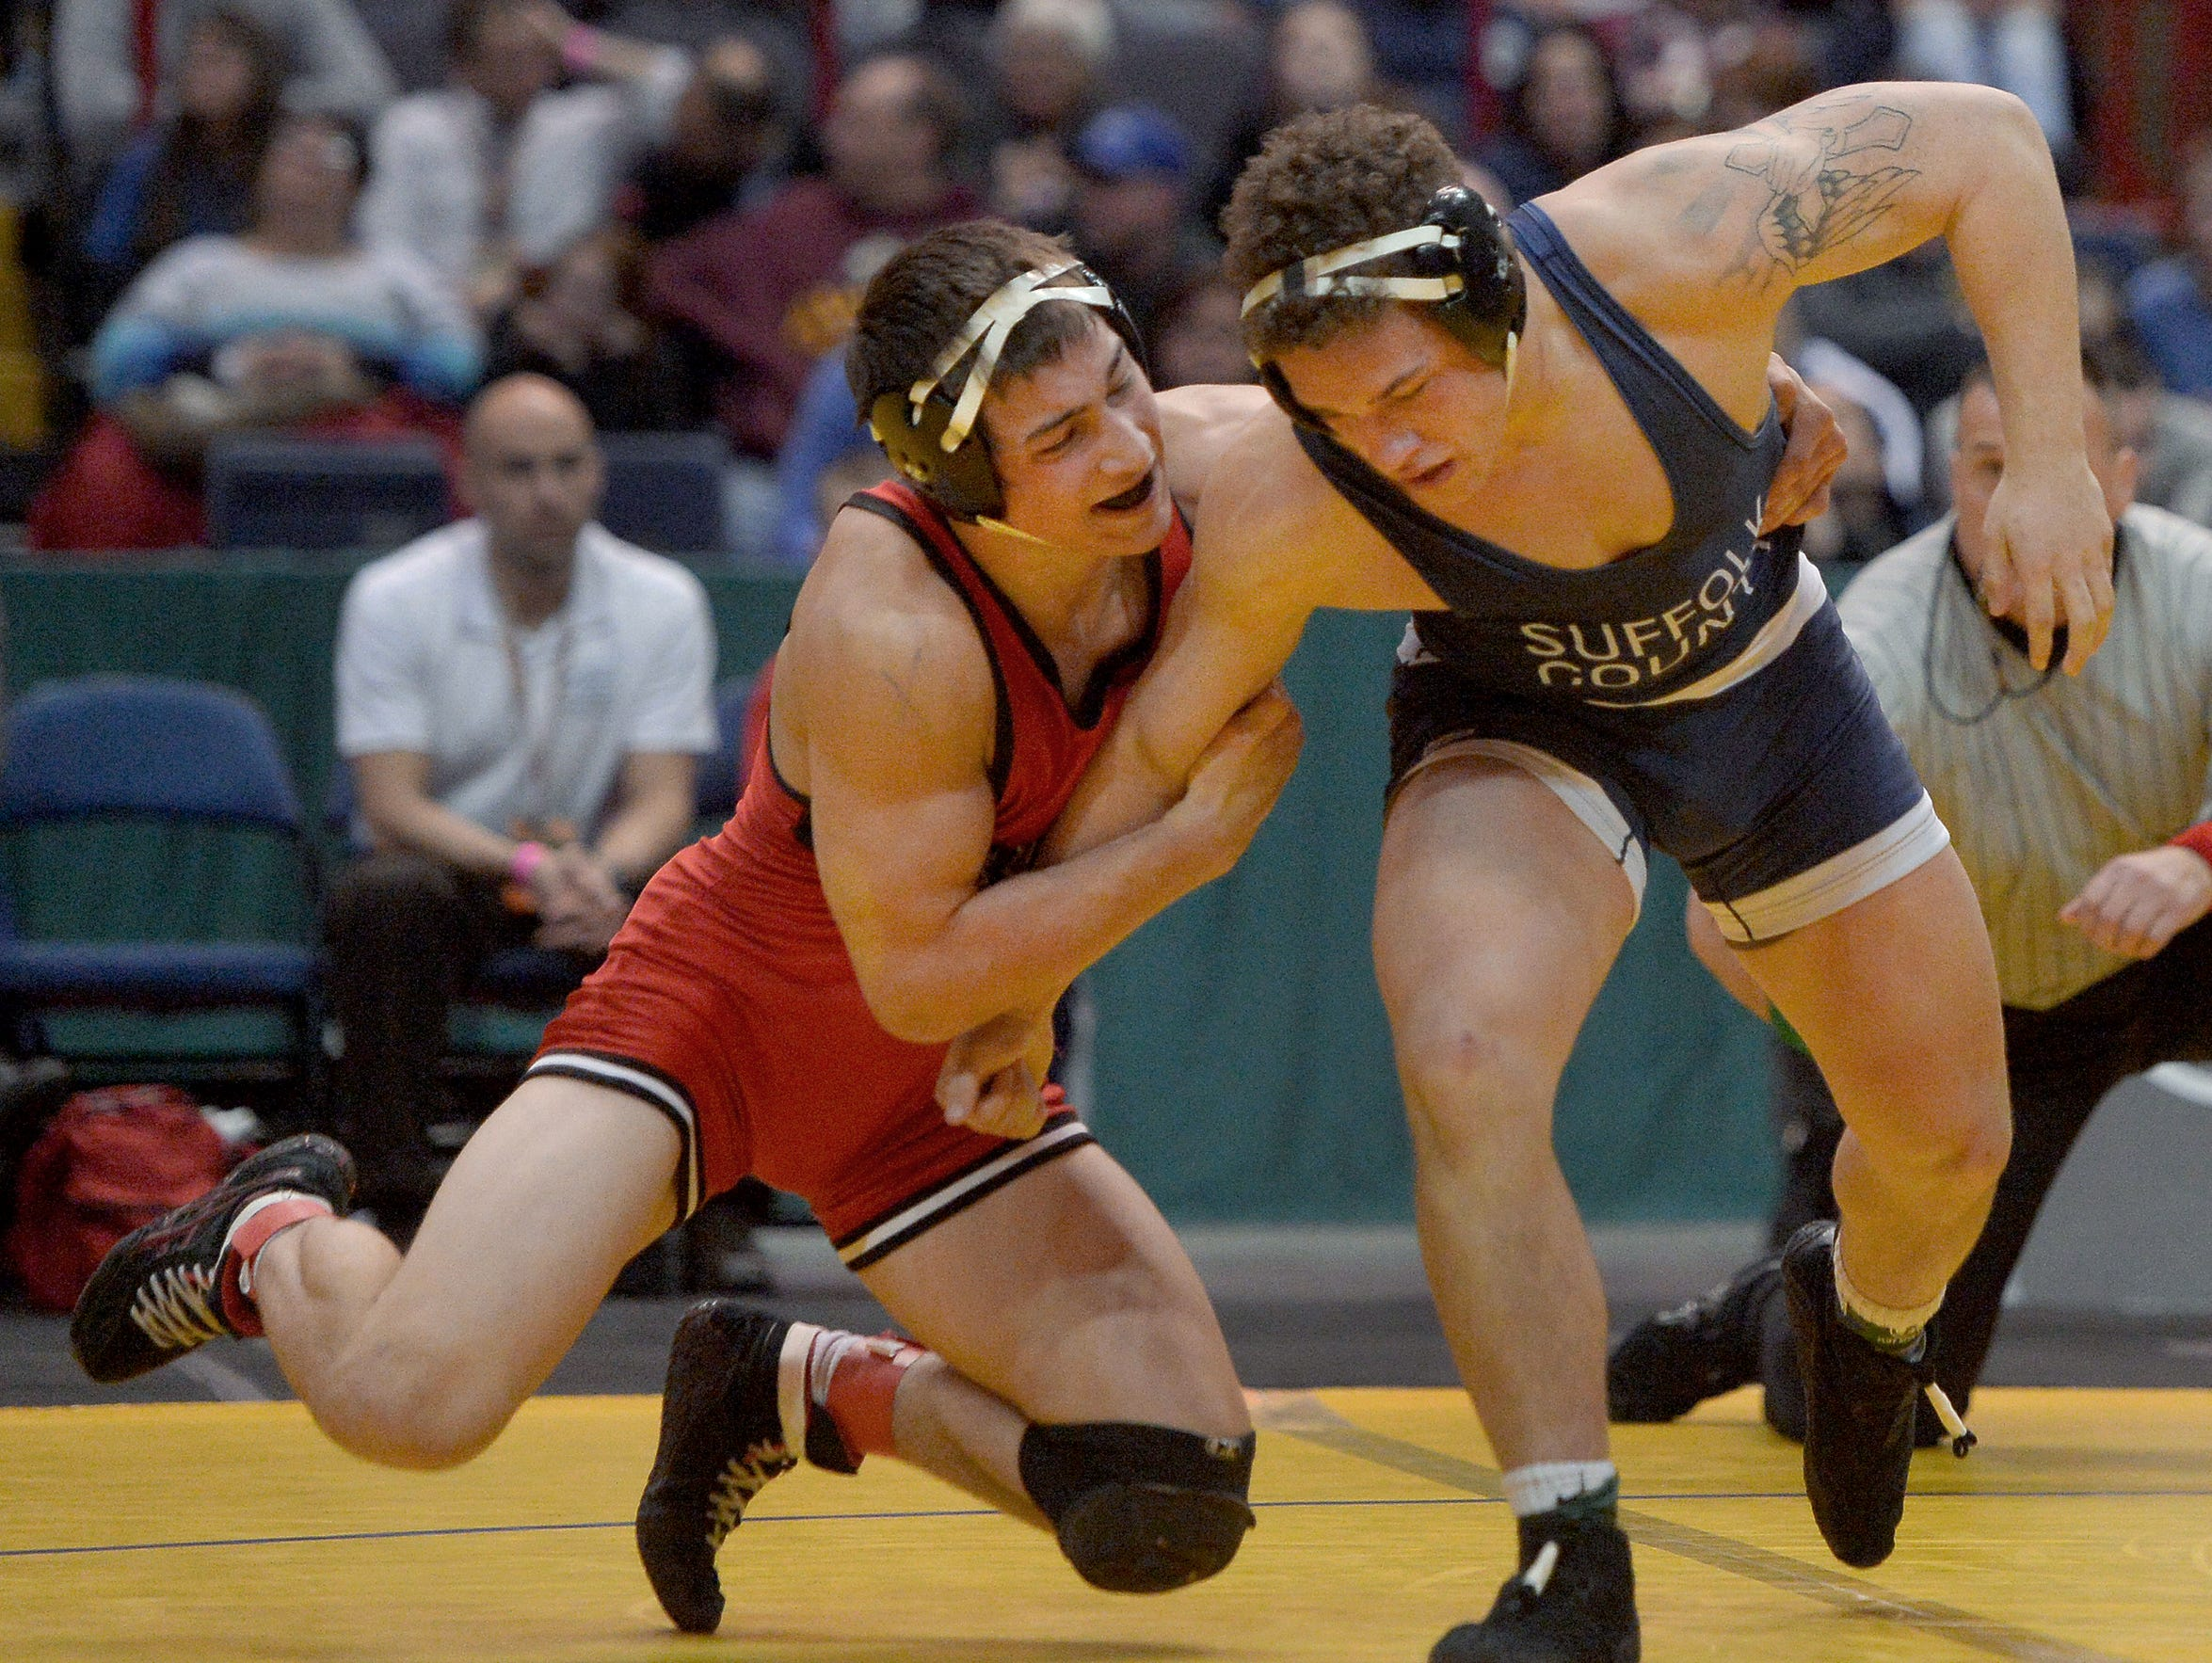 Hilton's Louie DePrez, left, wrestles against Hauppauge's